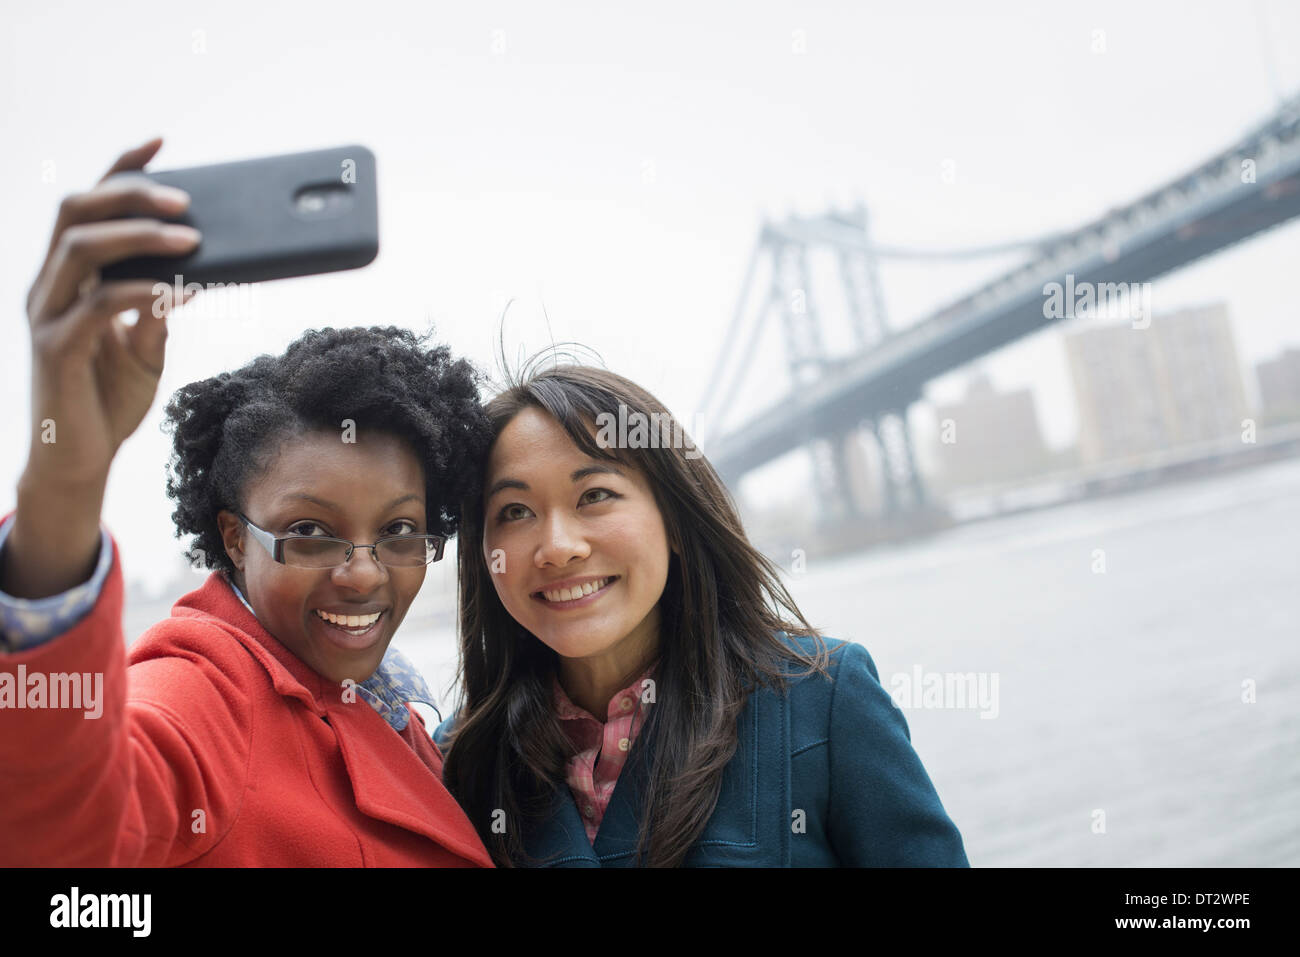 The Brooklyn Bridge crossing over the East River A couple two women taking a picture with a phone a selfy of themselves - Stock Image